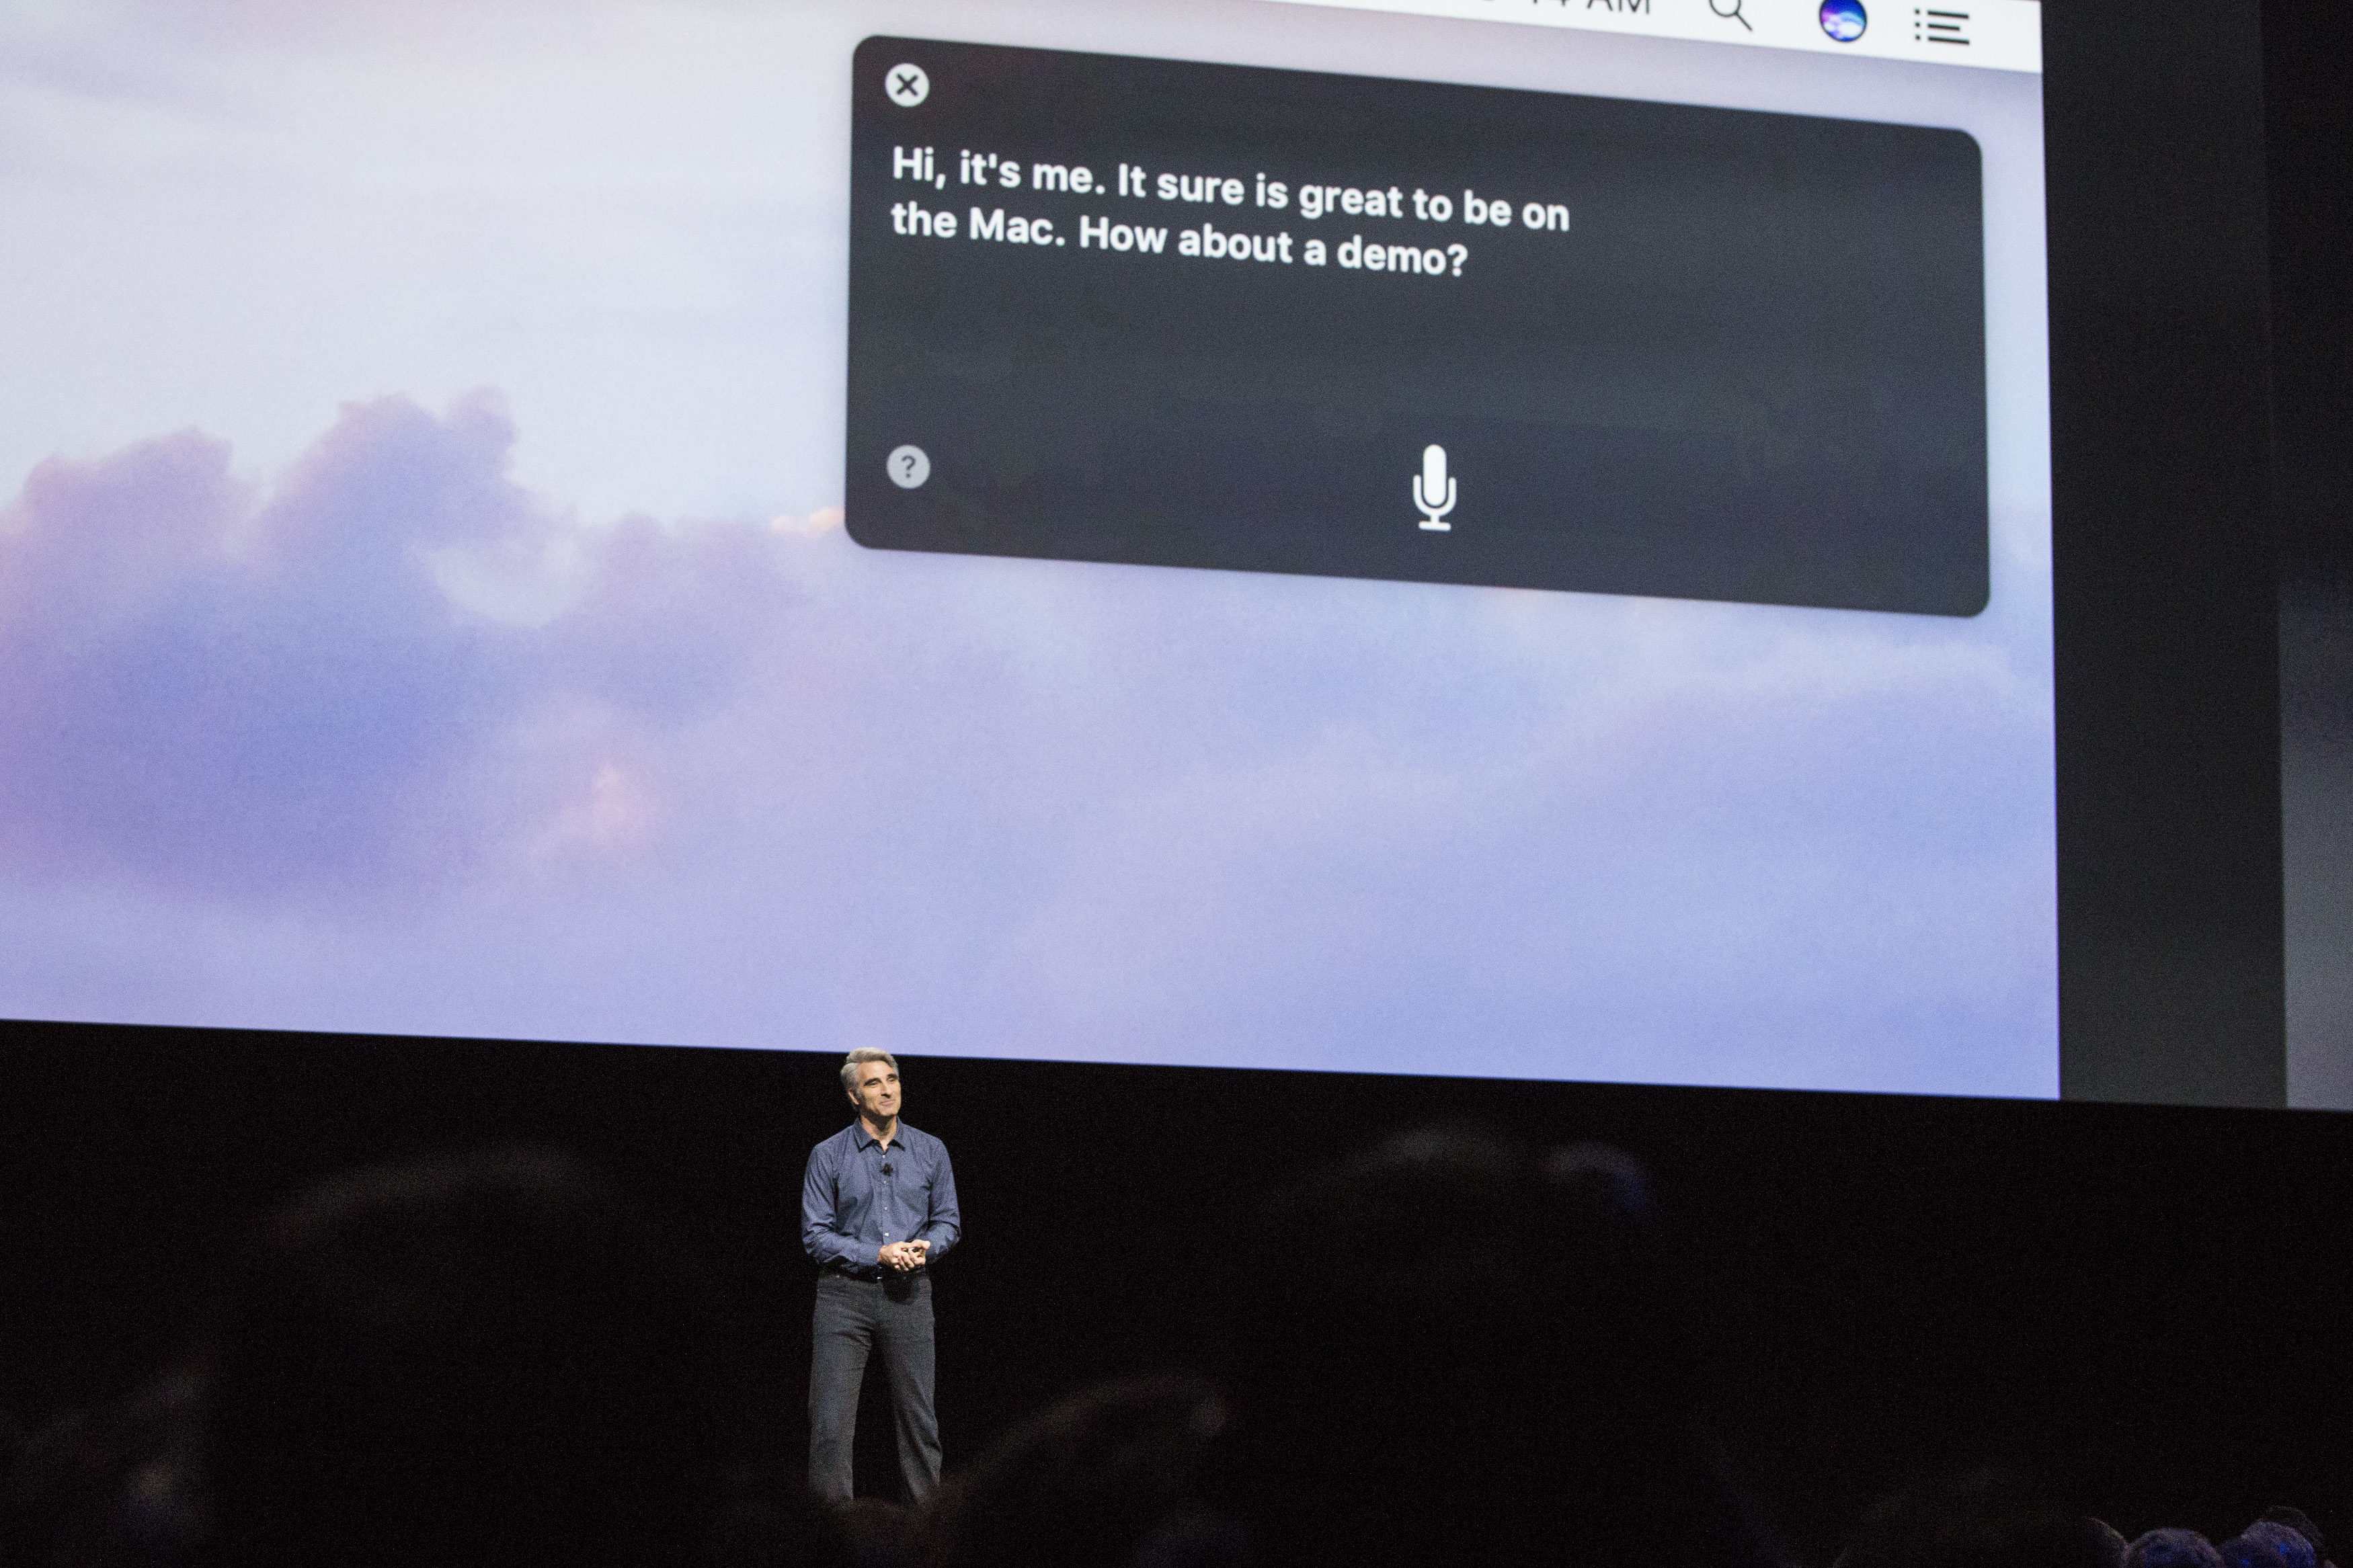 Craig Federighi, Apple's senior vice president of Software Engineering, introduces the new macOS Sierra software at an Apple event at the Worldwide Developer's Conference in San Francisco on June 13, 2016.